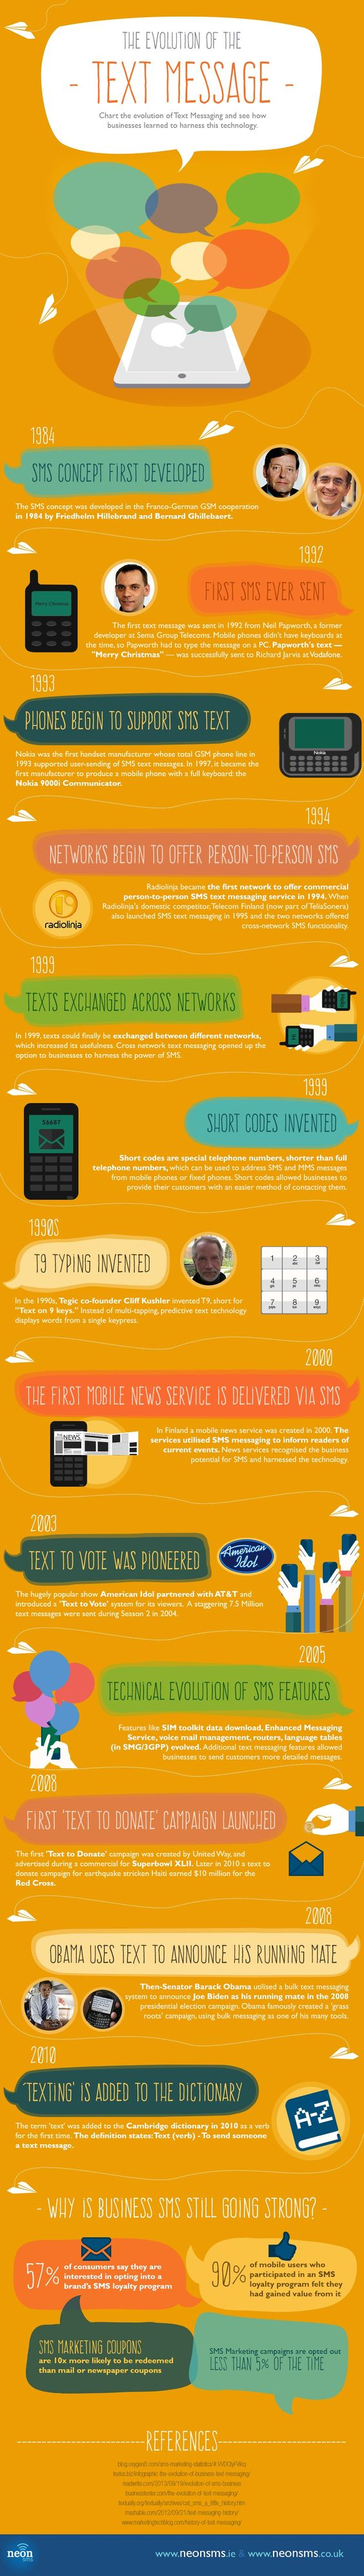 The Evolution Of The Text Message #Infographic #History #MobileDevices